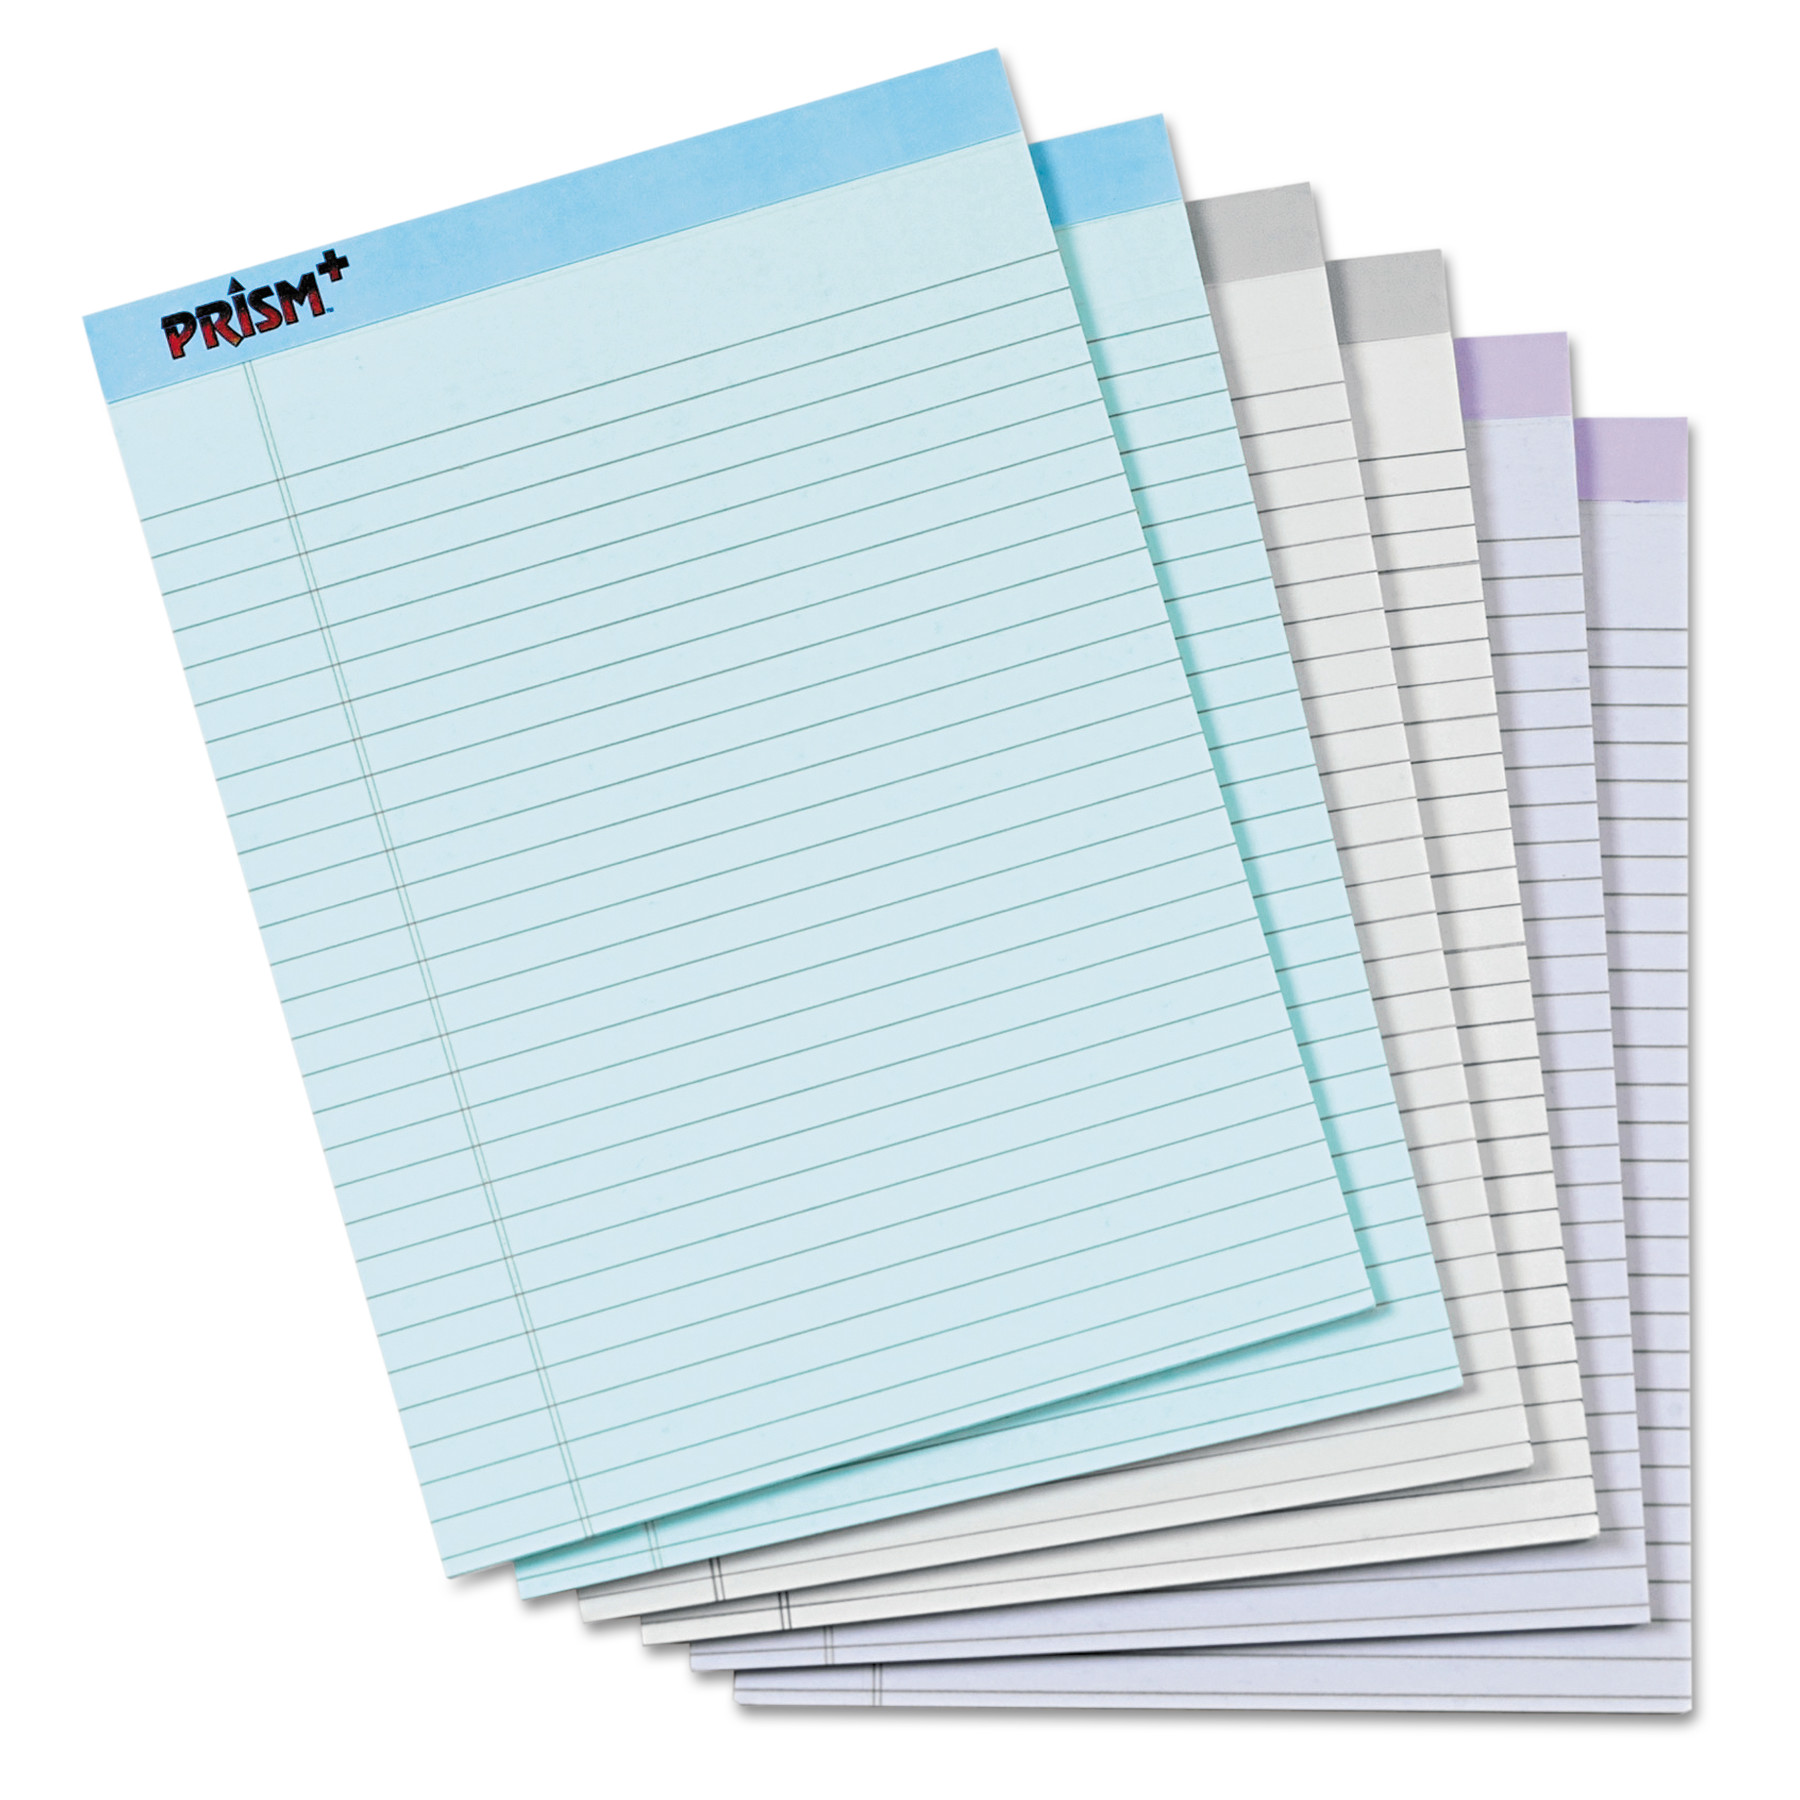 TOPS Prism Plus Colored Legal Pads, 8 1/2 x 11 3/4, Pastels, 50 Sheets, 6 Pads/Pack -TOP63116